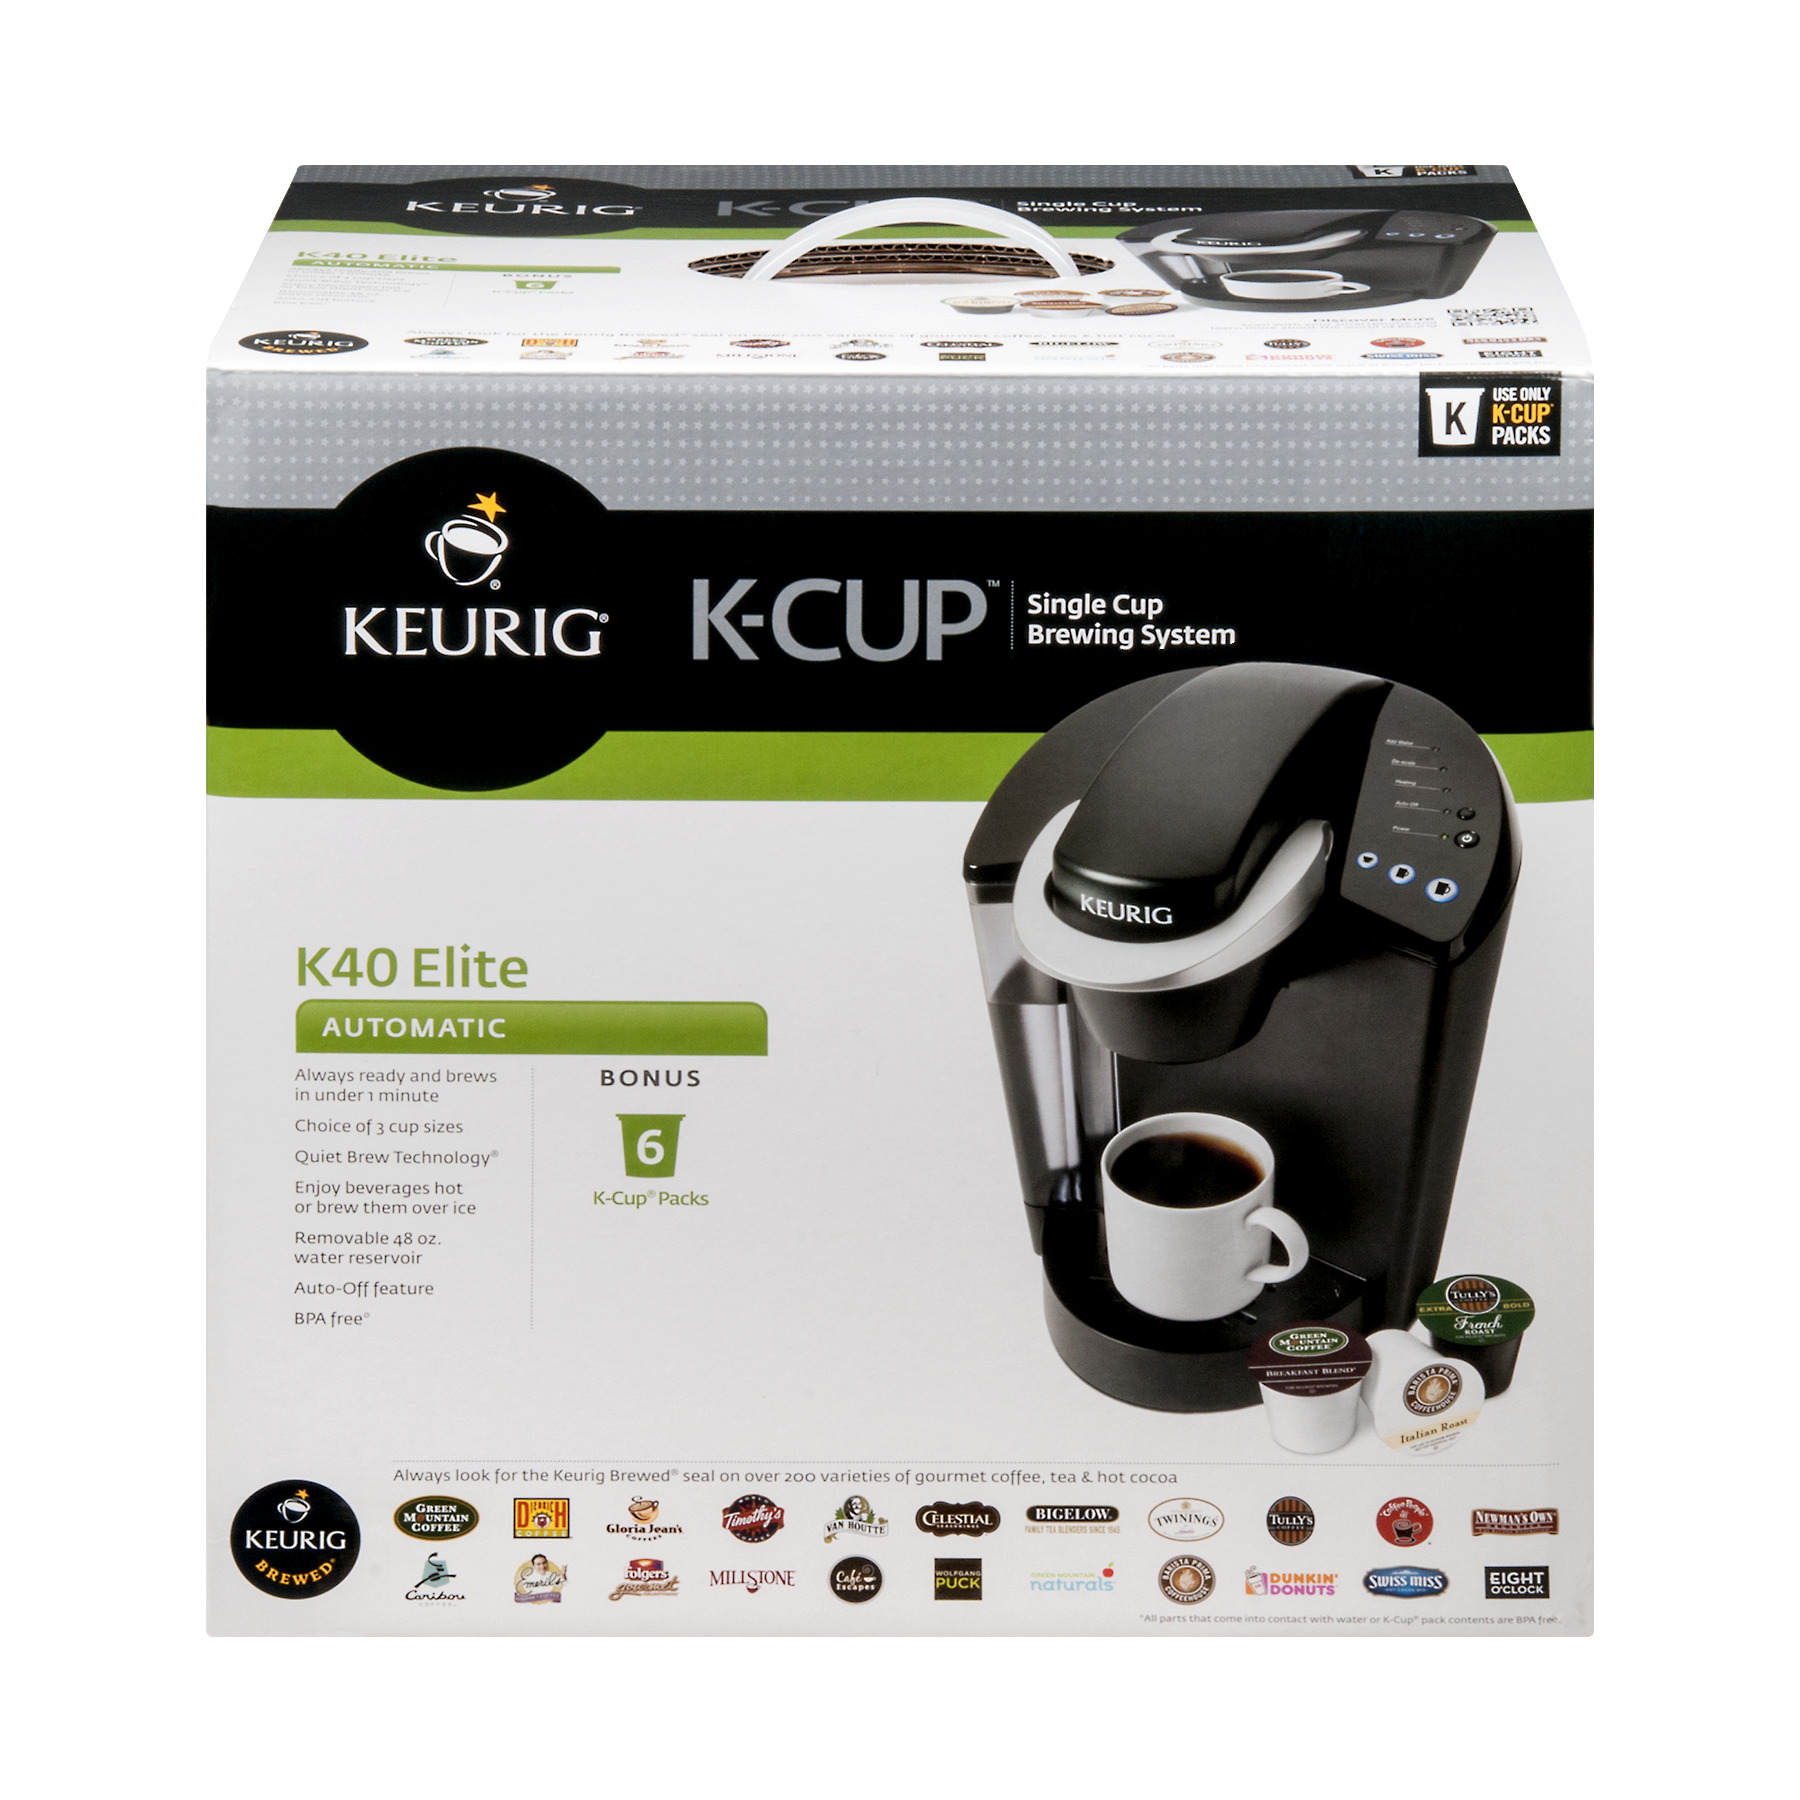 Keuring K-Cup Single Cup Brewing System, 1.0 CT